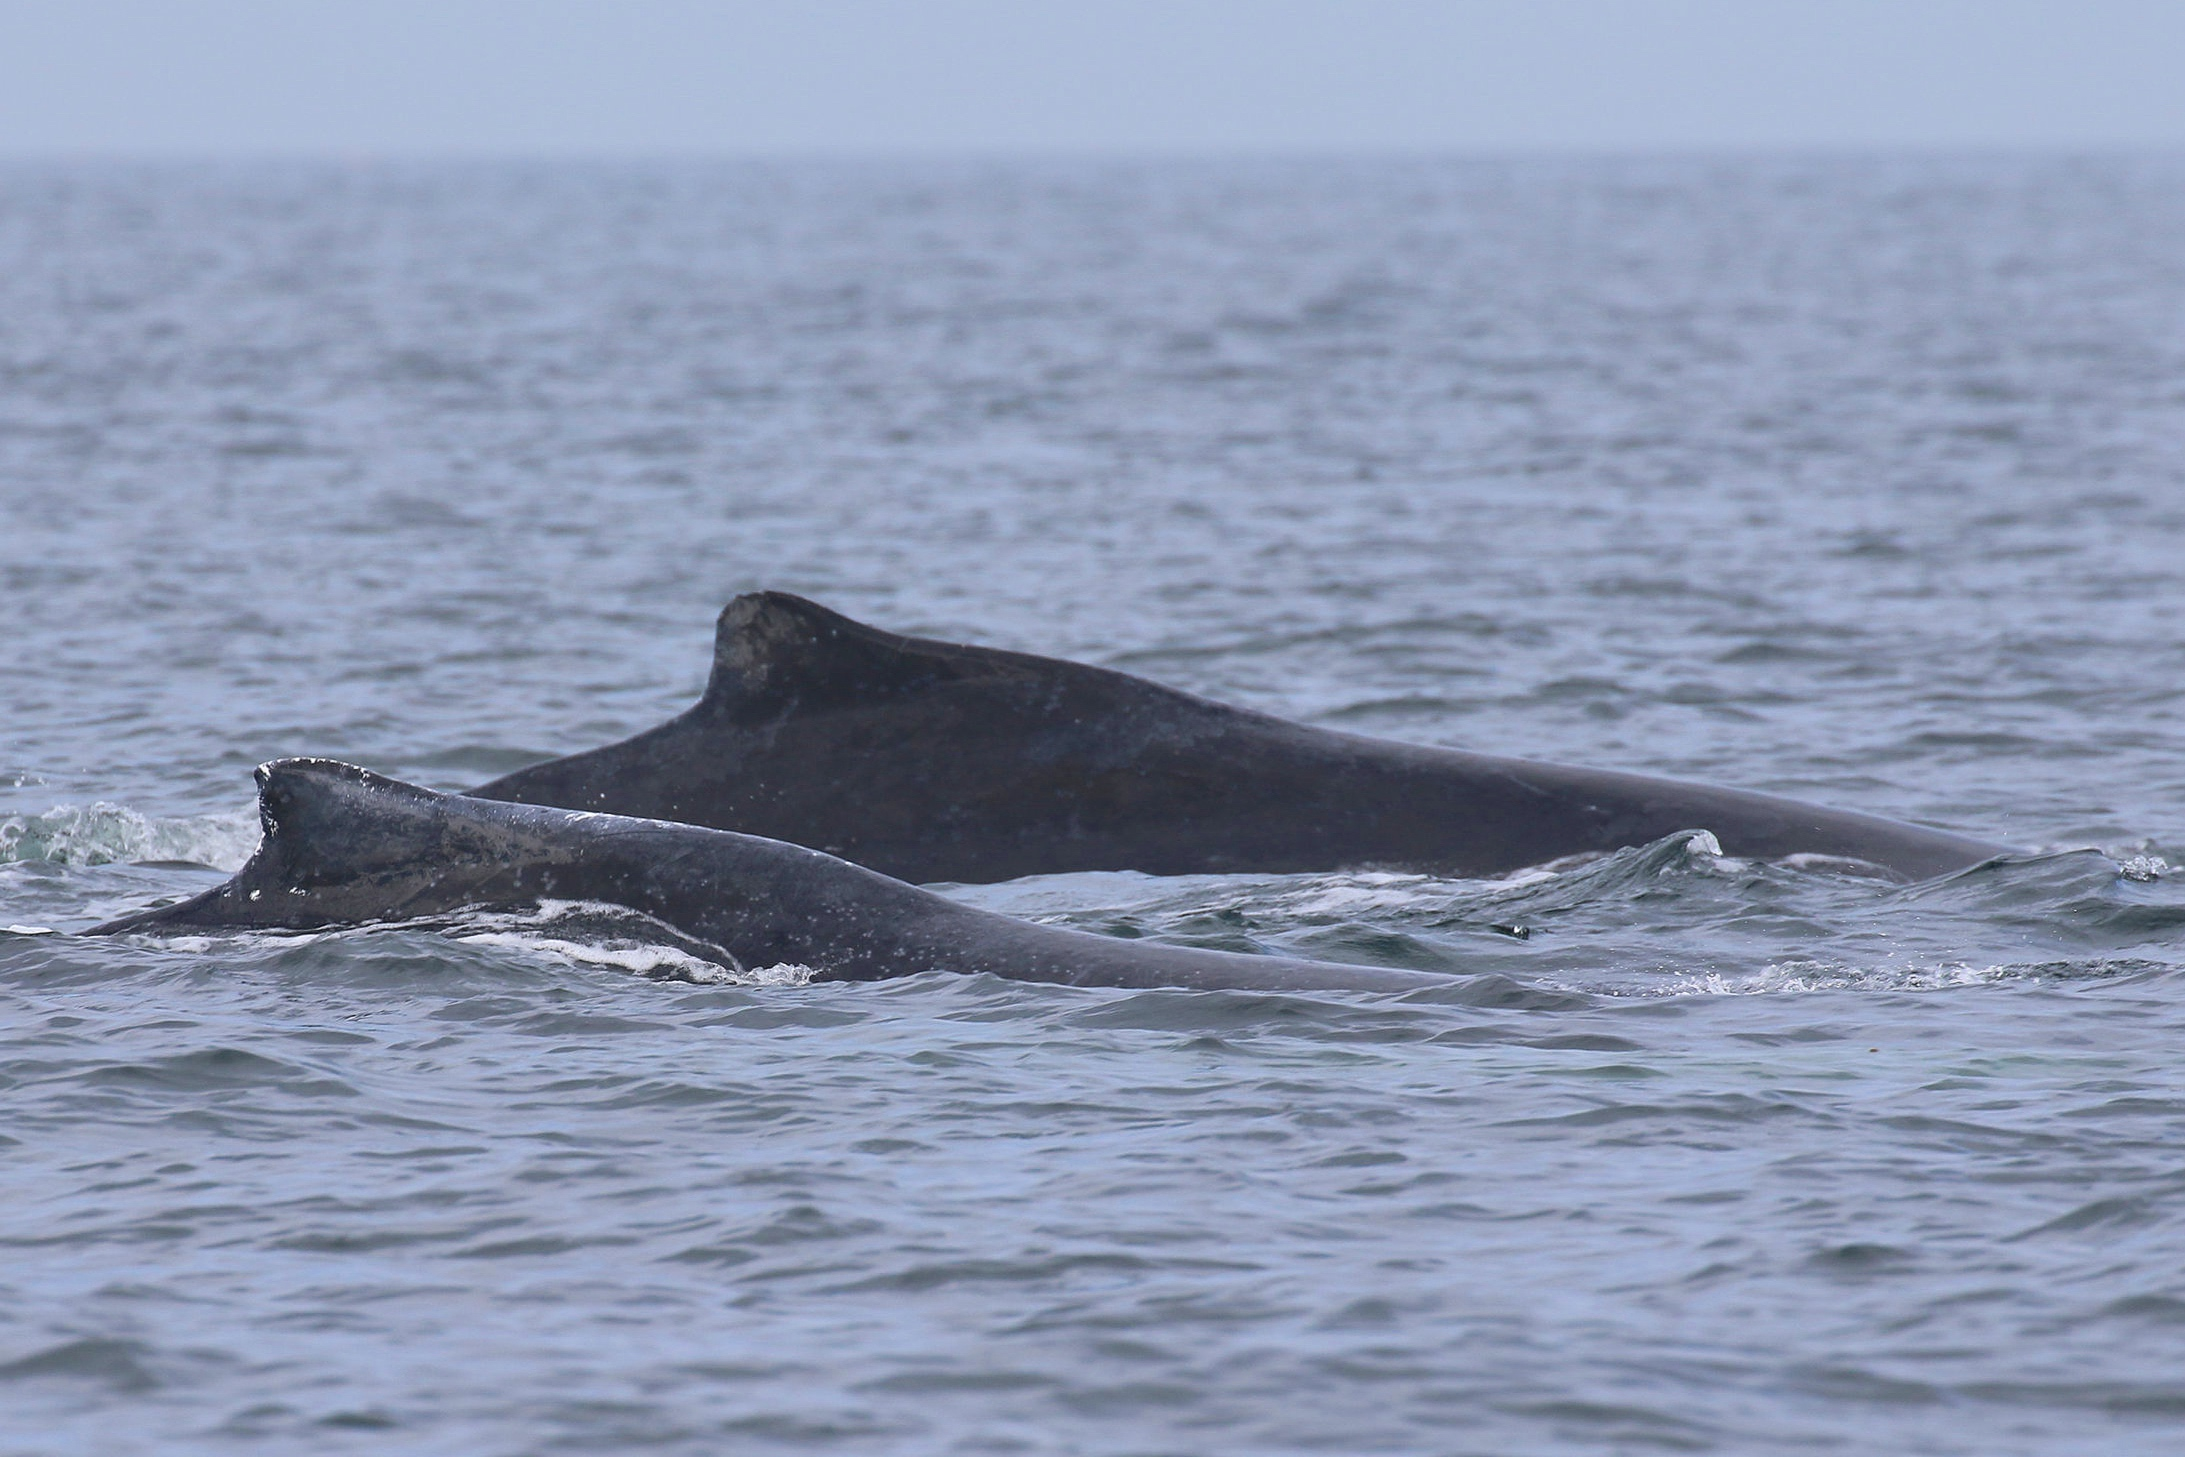 Beak in the foreground and our Mystery whale in the background. Photo by Cheyenne Brewster (10.30)